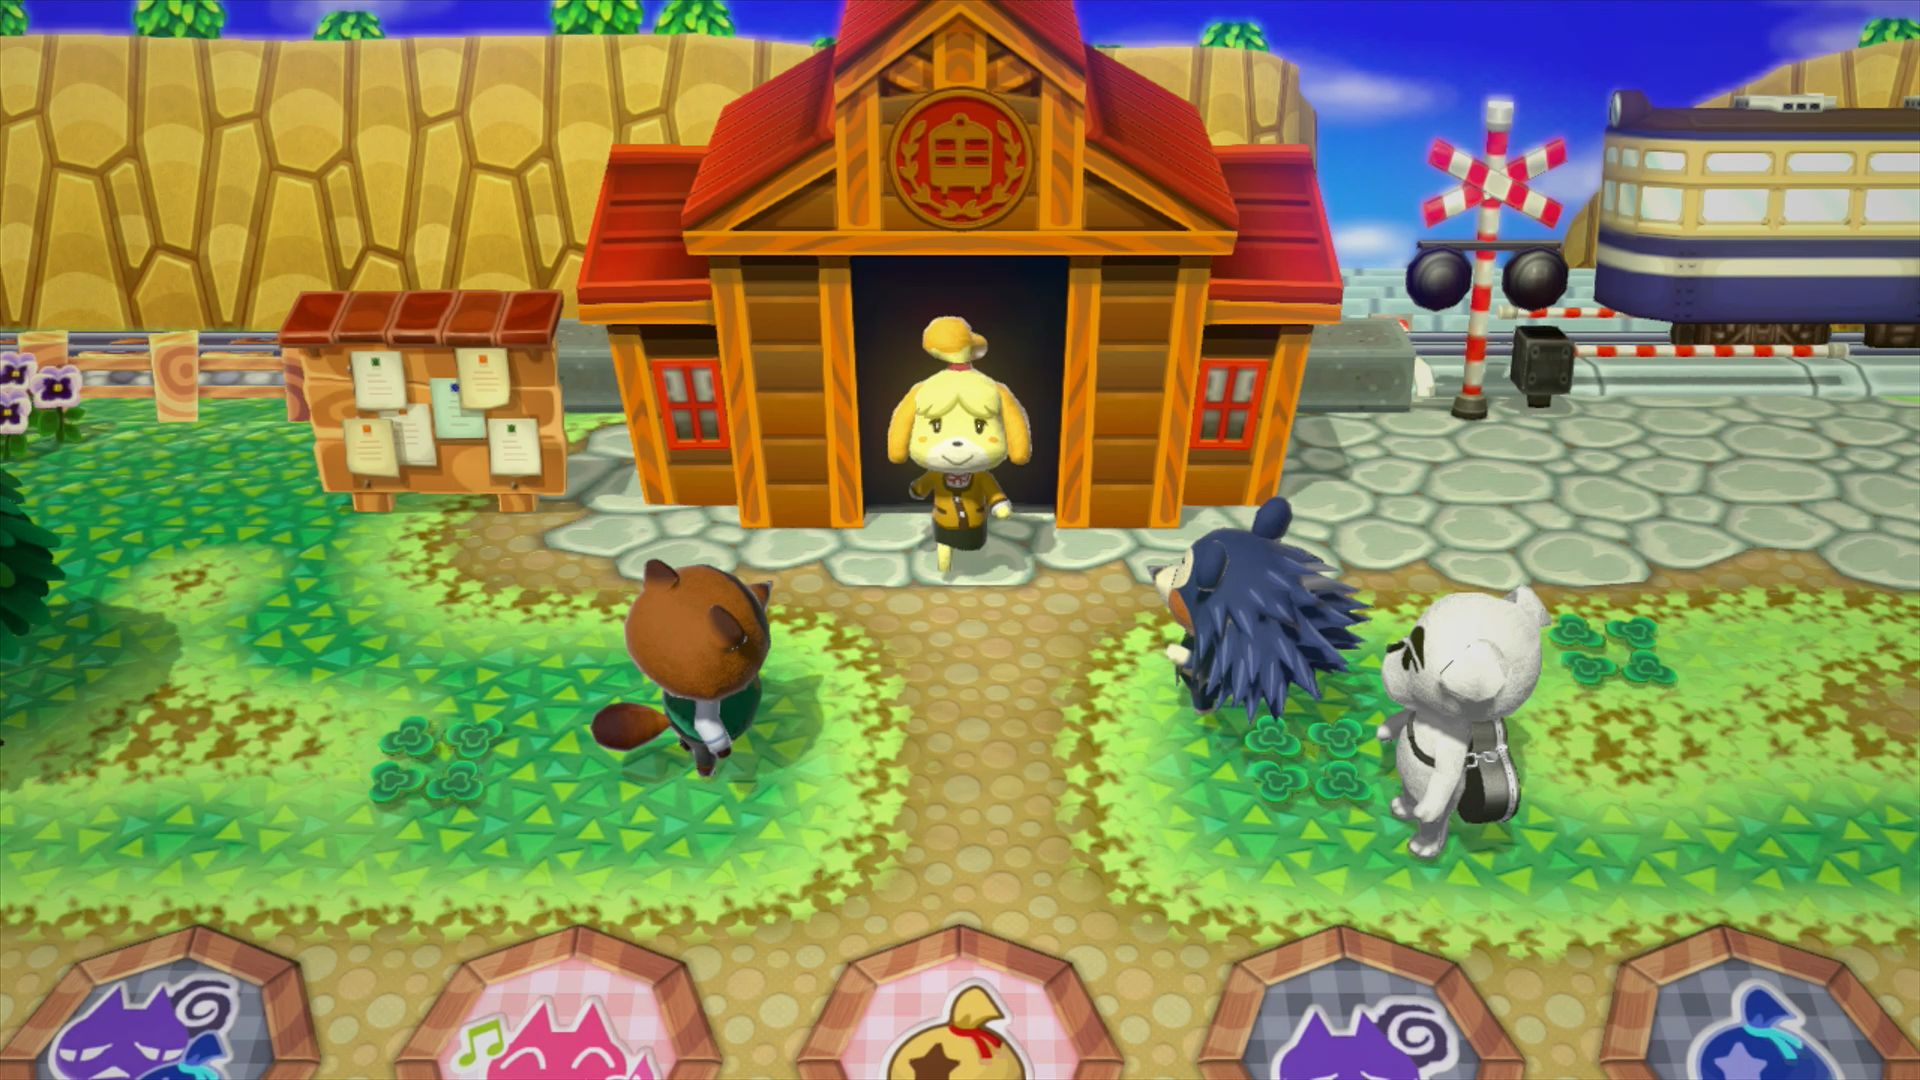 Image of: School Animal Crossing Happy Home Designer 3ds Comes Out On July 30th In Japan September 25th In North America And October 1st In Europe Perfectly Nintendo Animal Crossing Happy Home Designer Japanese Overview Video More